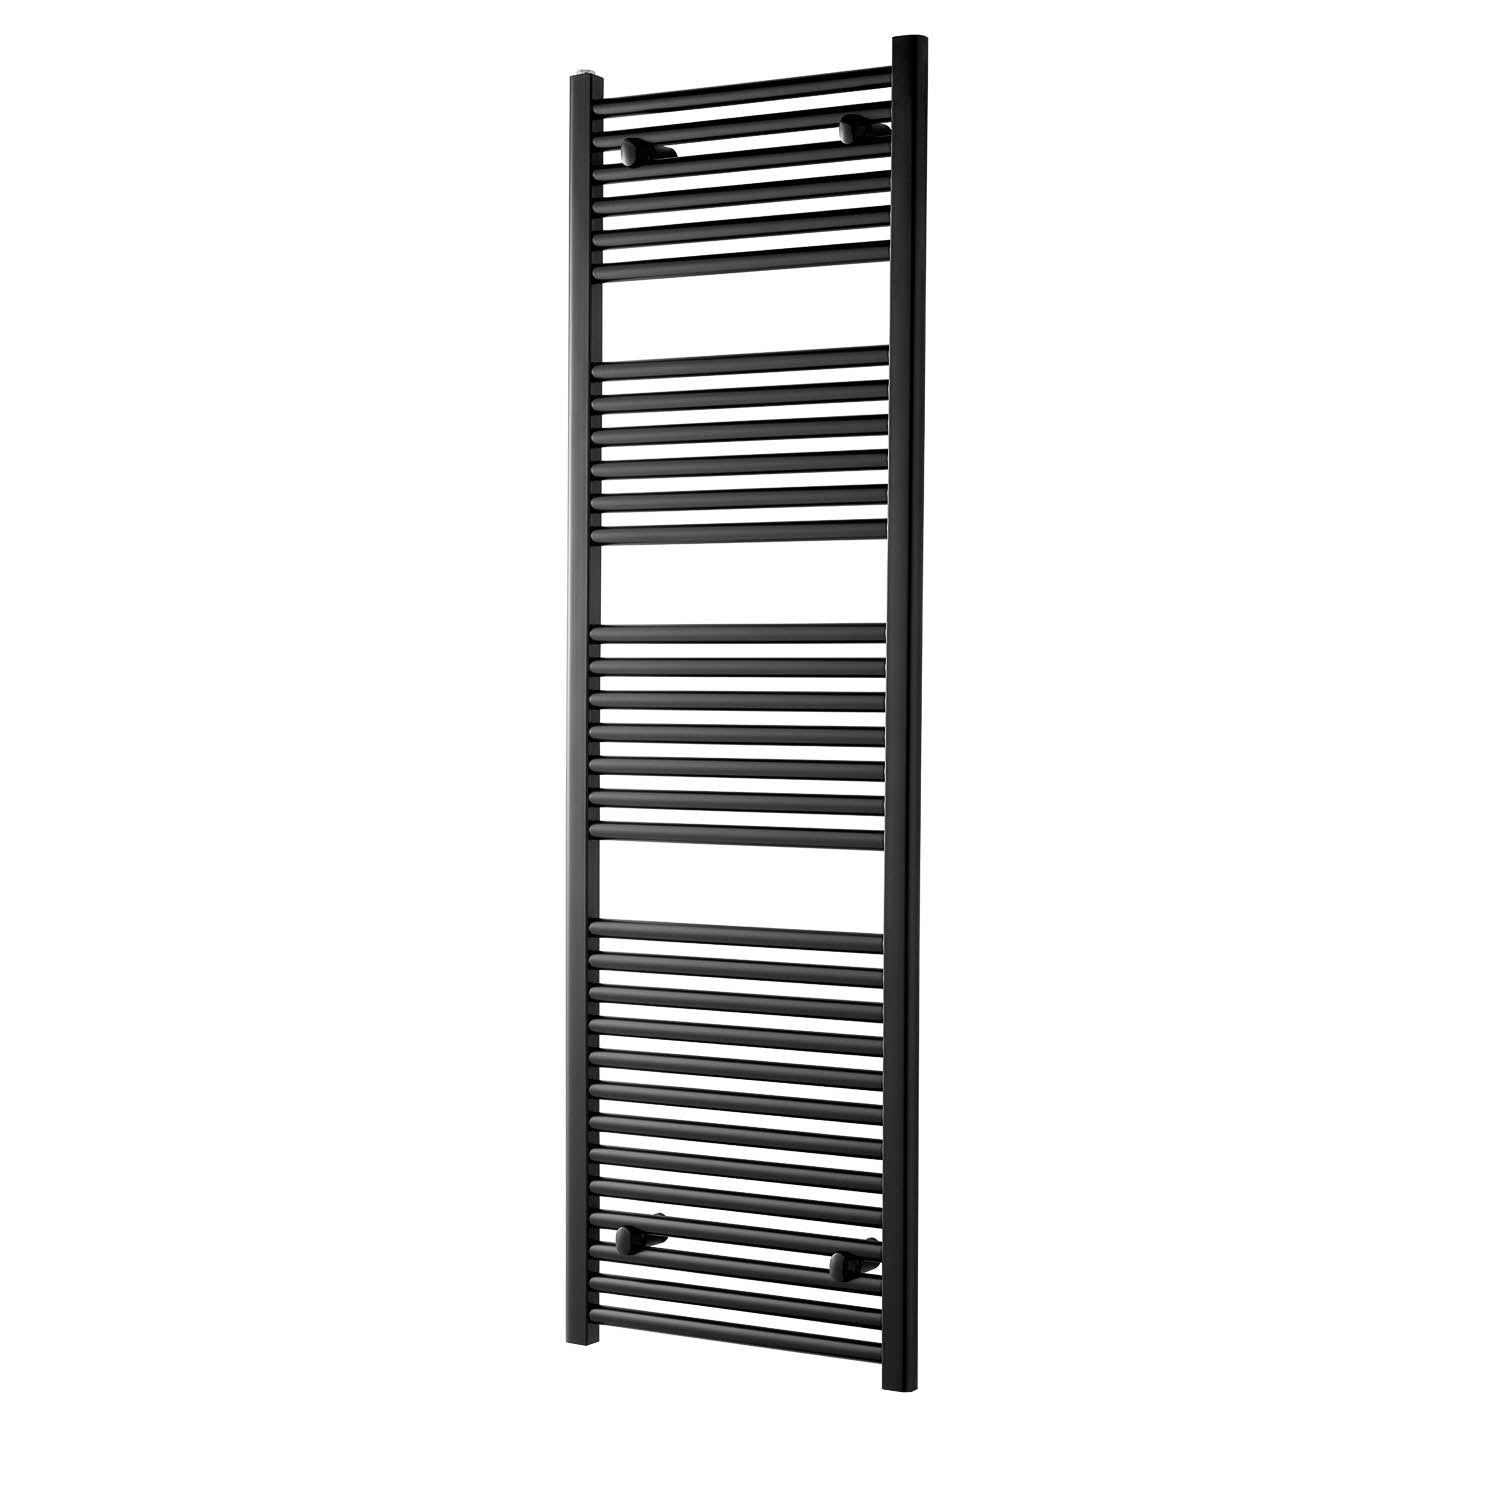 1600x500mm Modale Anti-Scald Towel Rail with a matt black finish on a white background